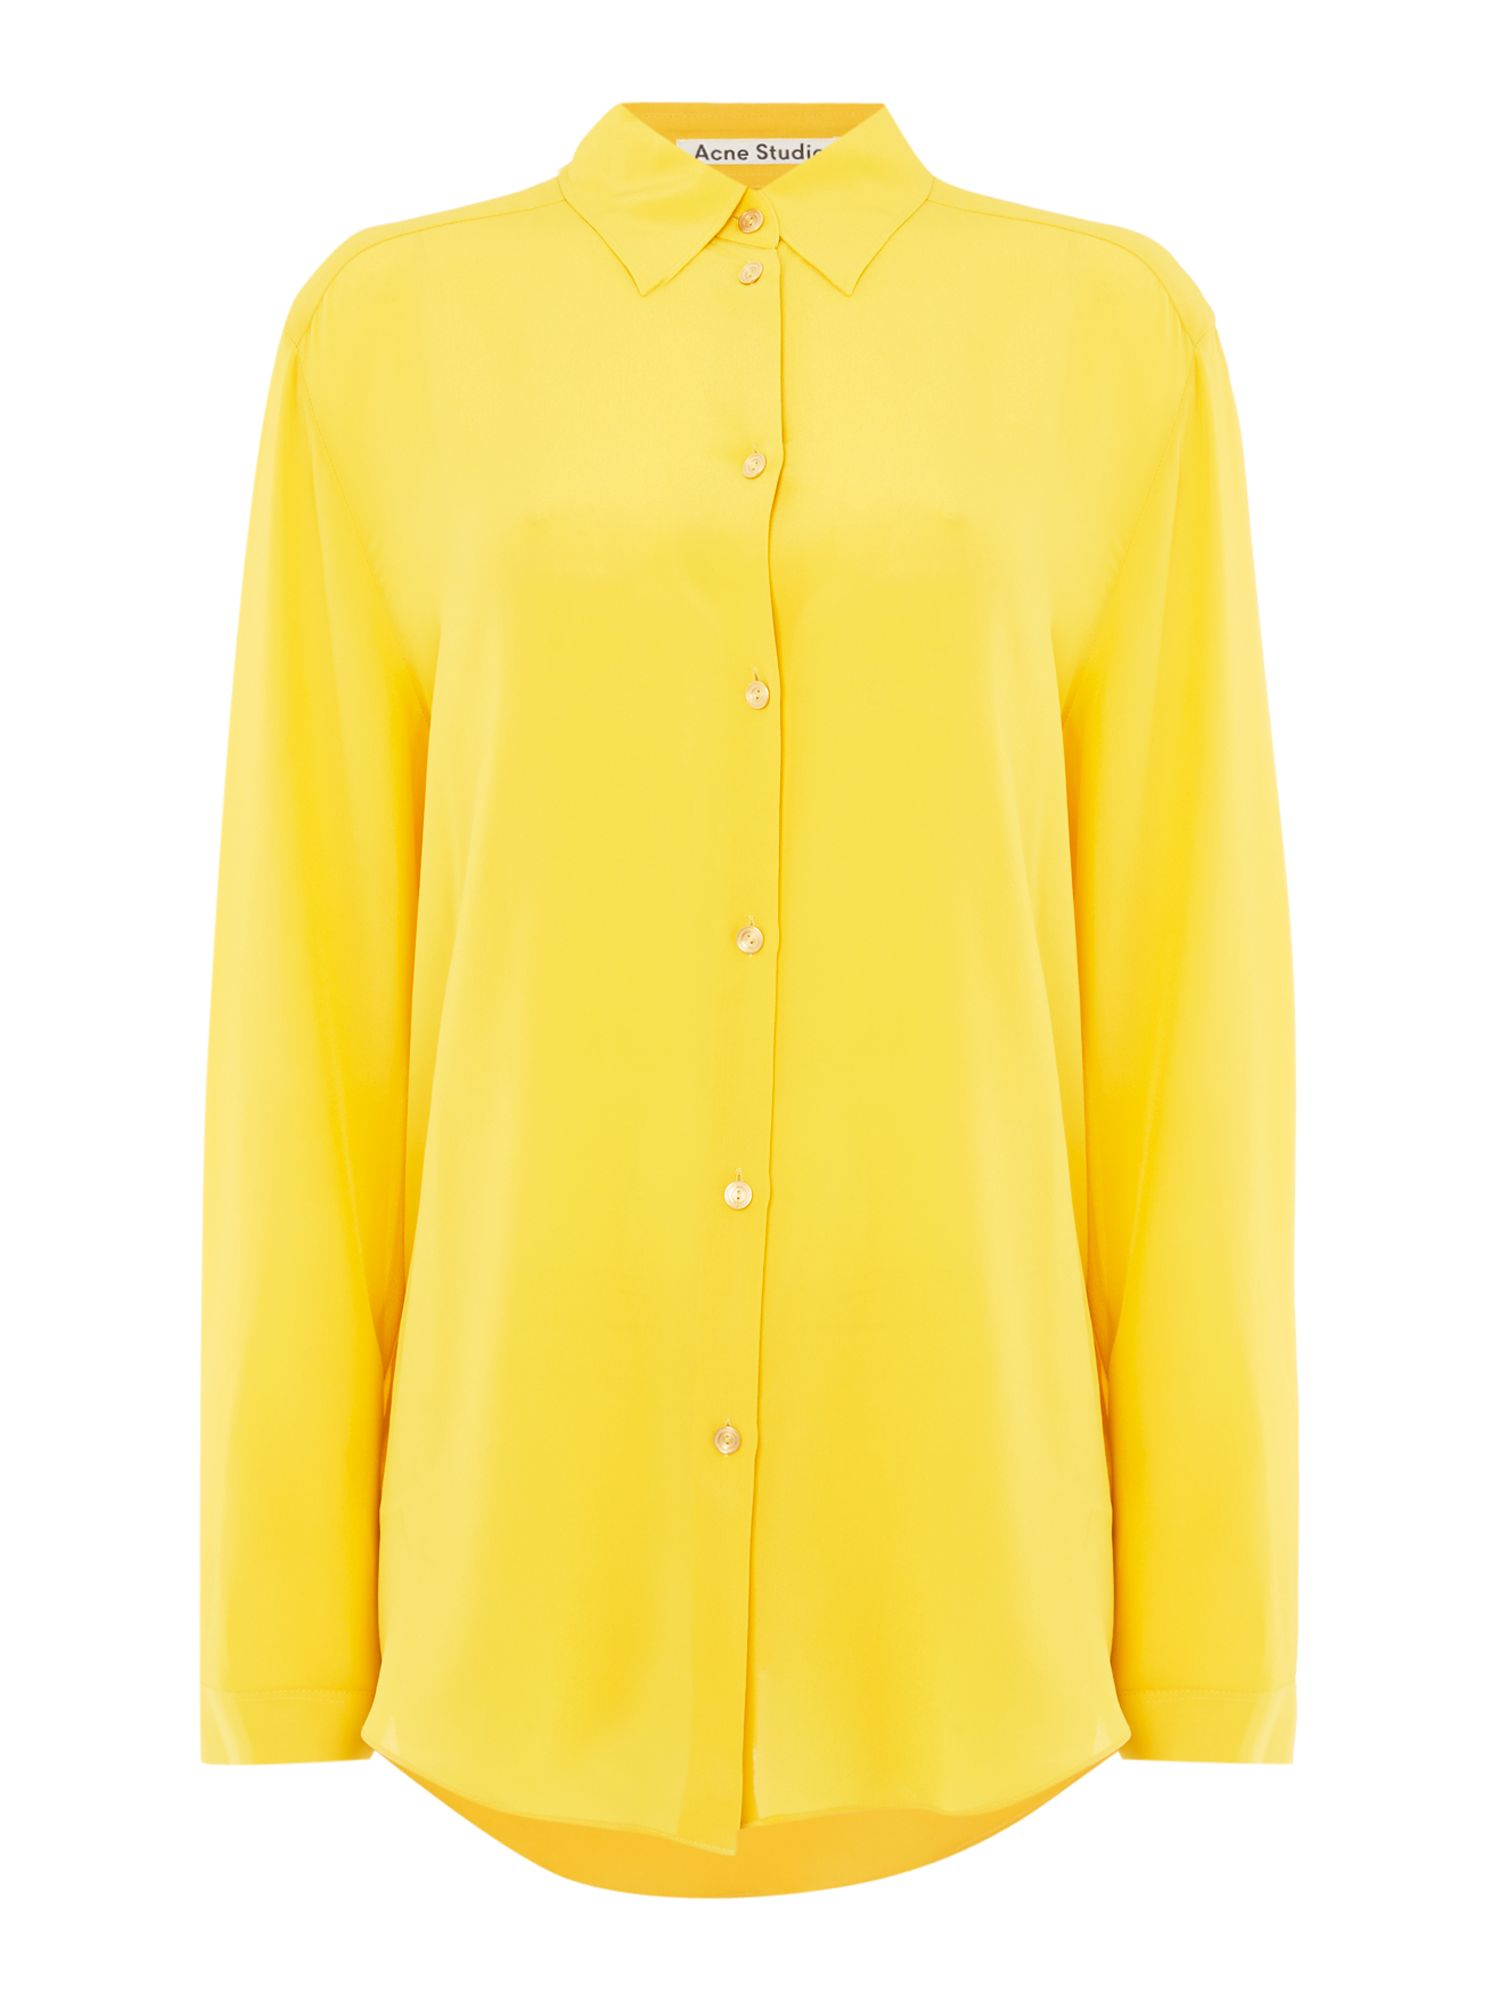 Acne Long Sleeve Sheer Button Up Shirt In Yellow Pastel